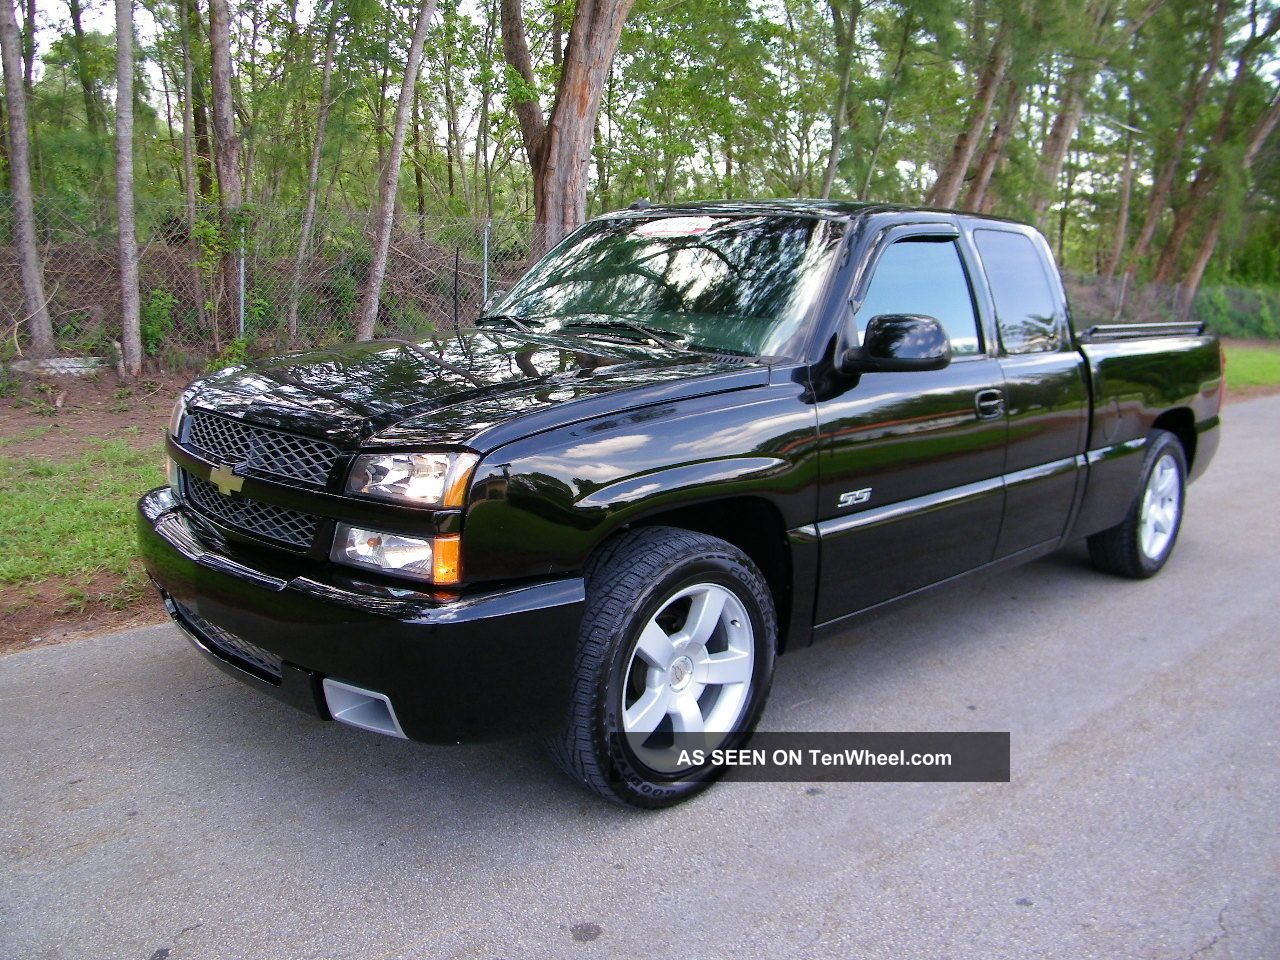 2003 chevrolet silverado 1500 ss extended cab pickup 4. Black Bedroom Furniture Sets. Home Design Ideas